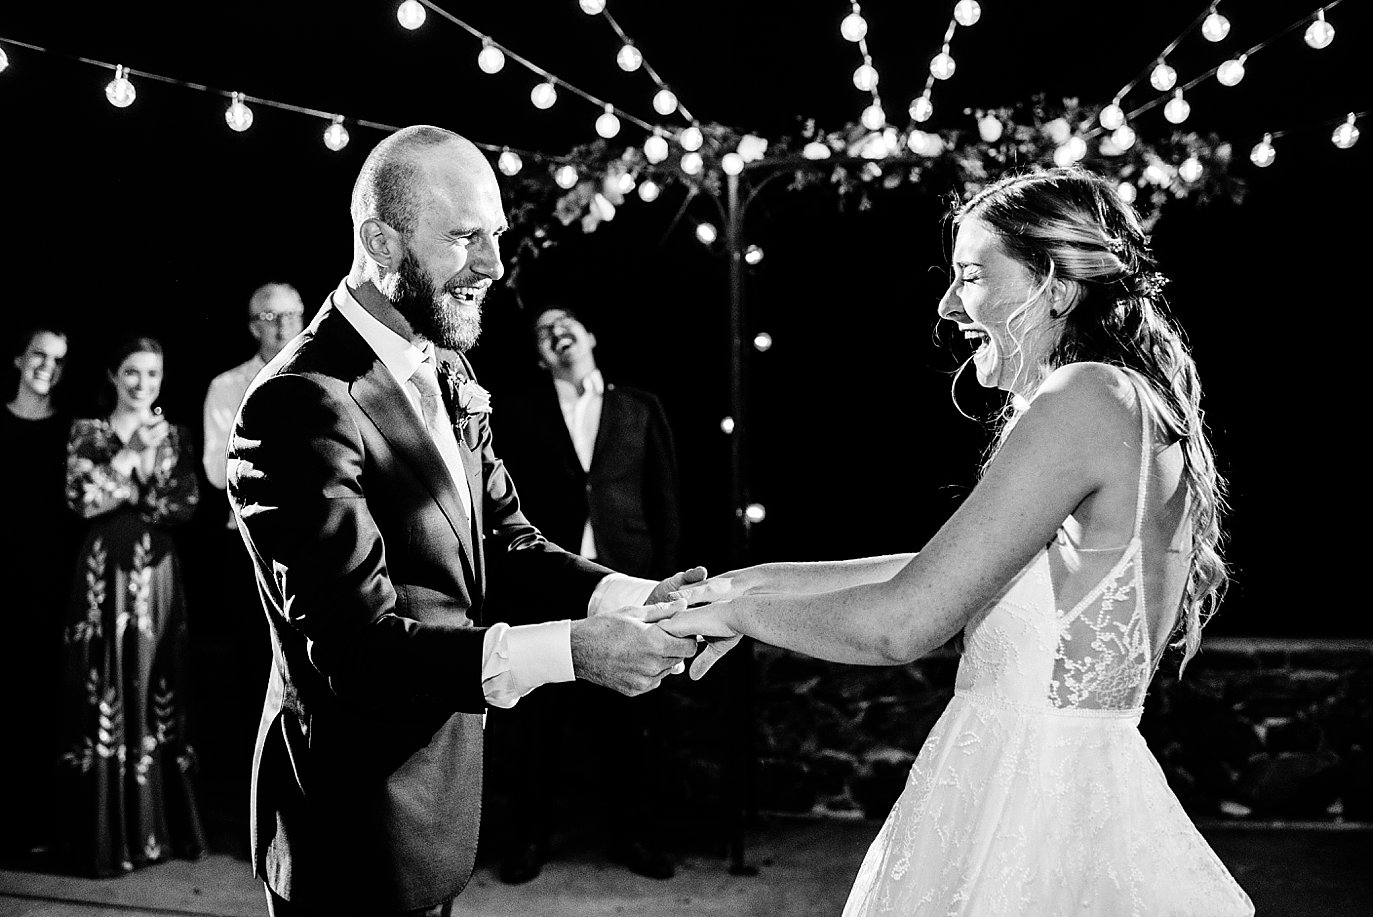 bride and groom first dance at Boettcher Mansion wedding outdoor patio with market lights